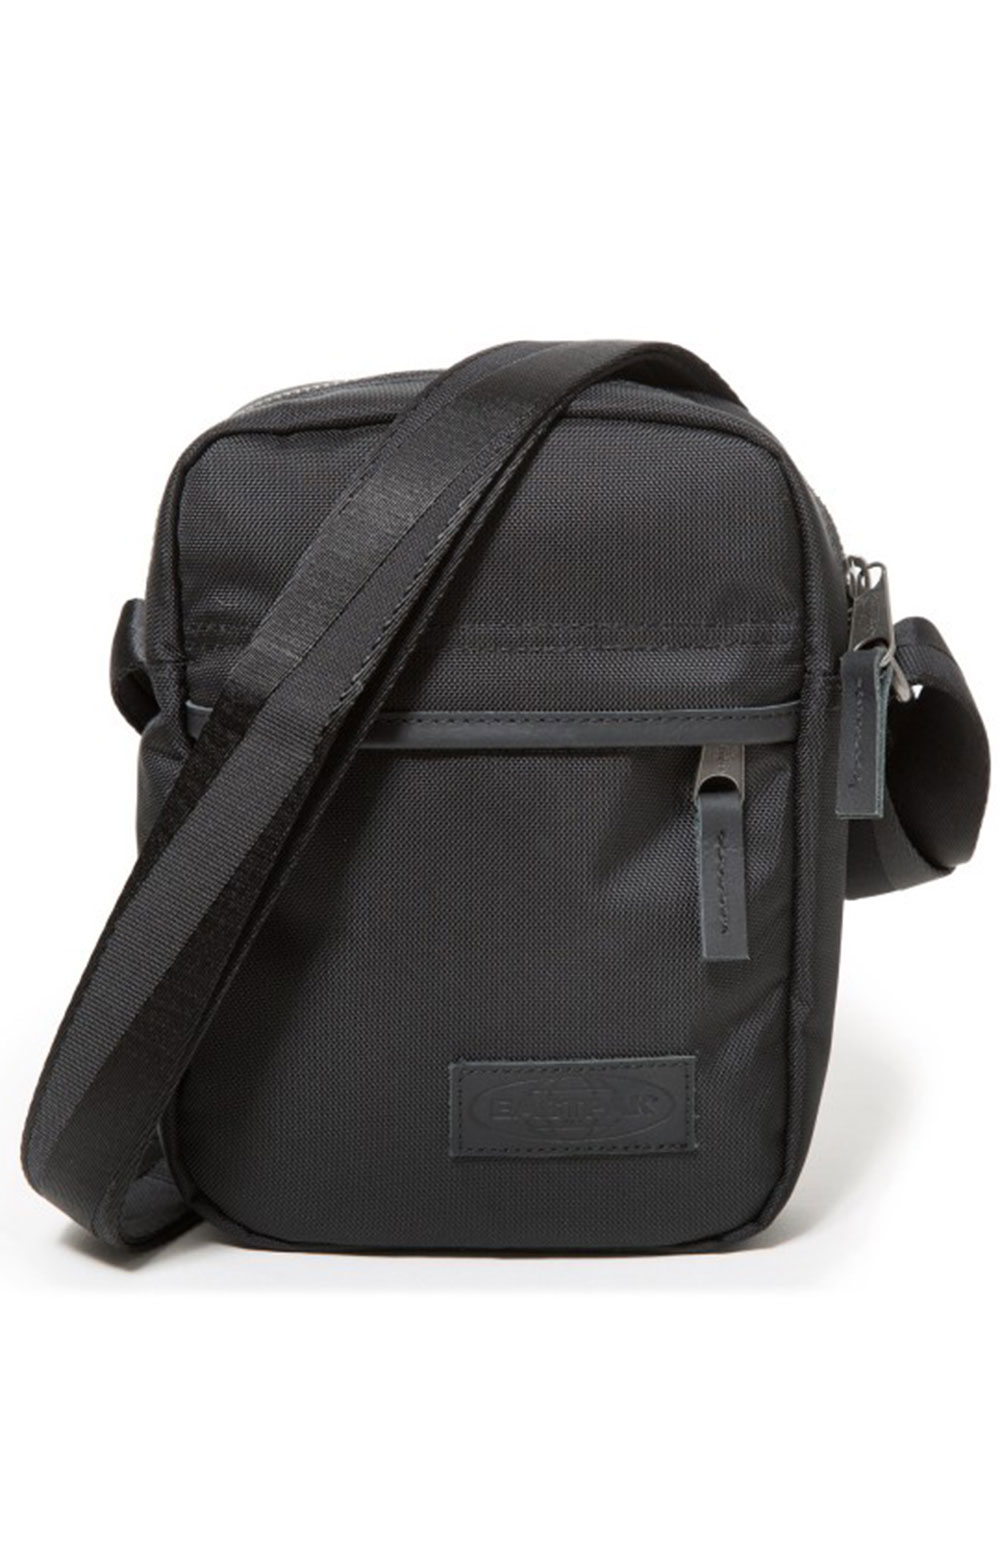 The One Bag - Constructed Black 4